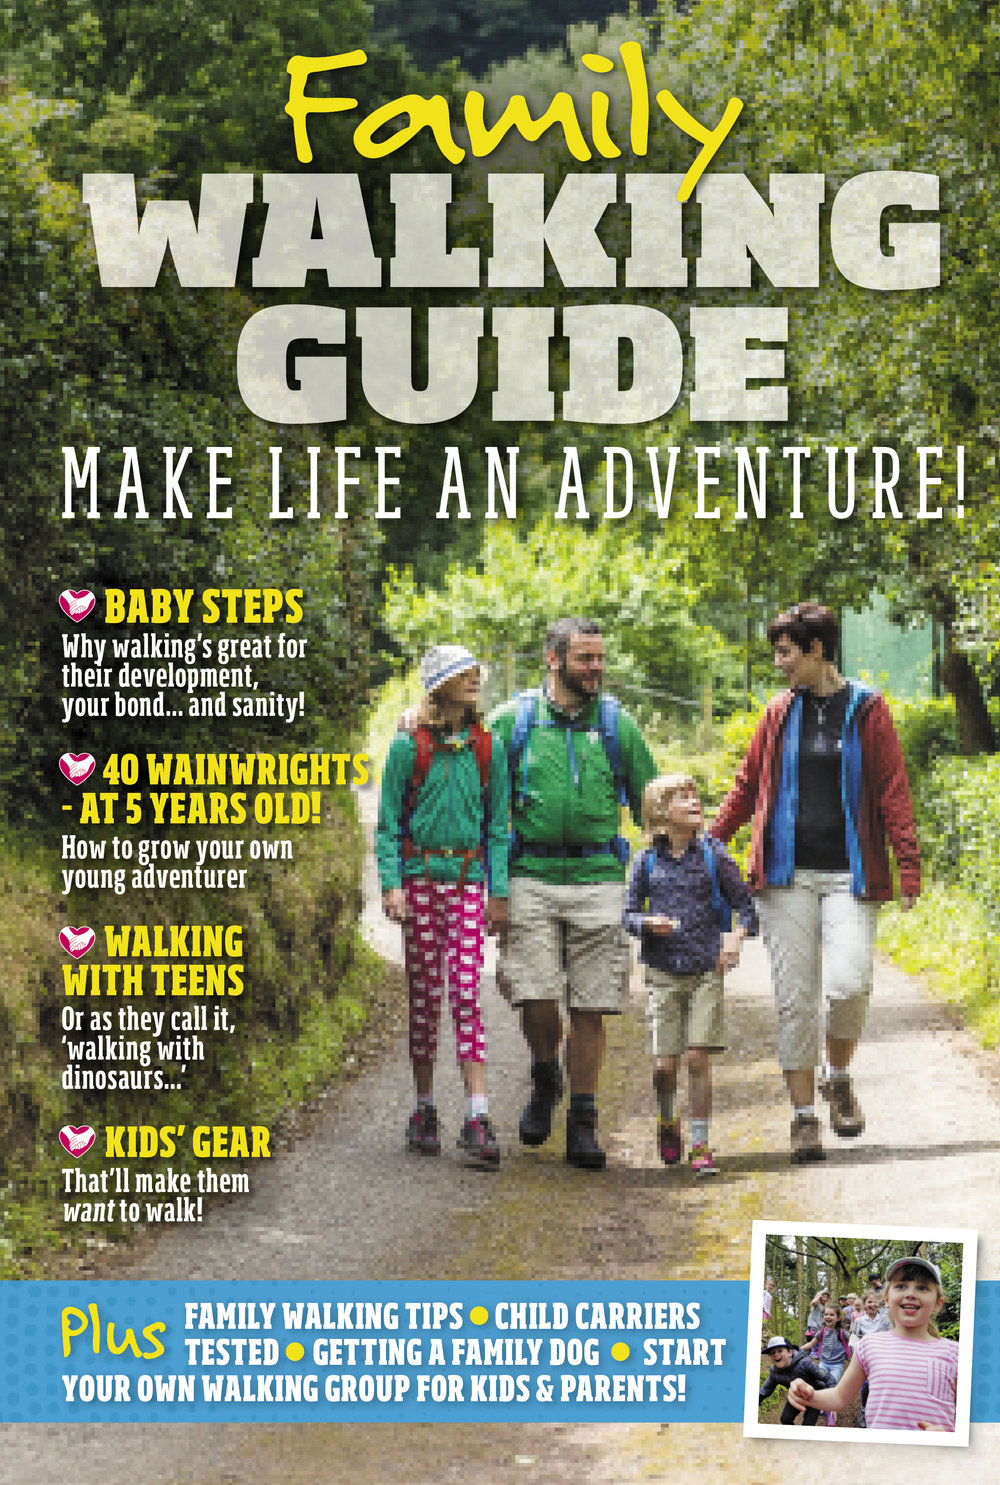 Free supplement with the August issue of Country Walking.